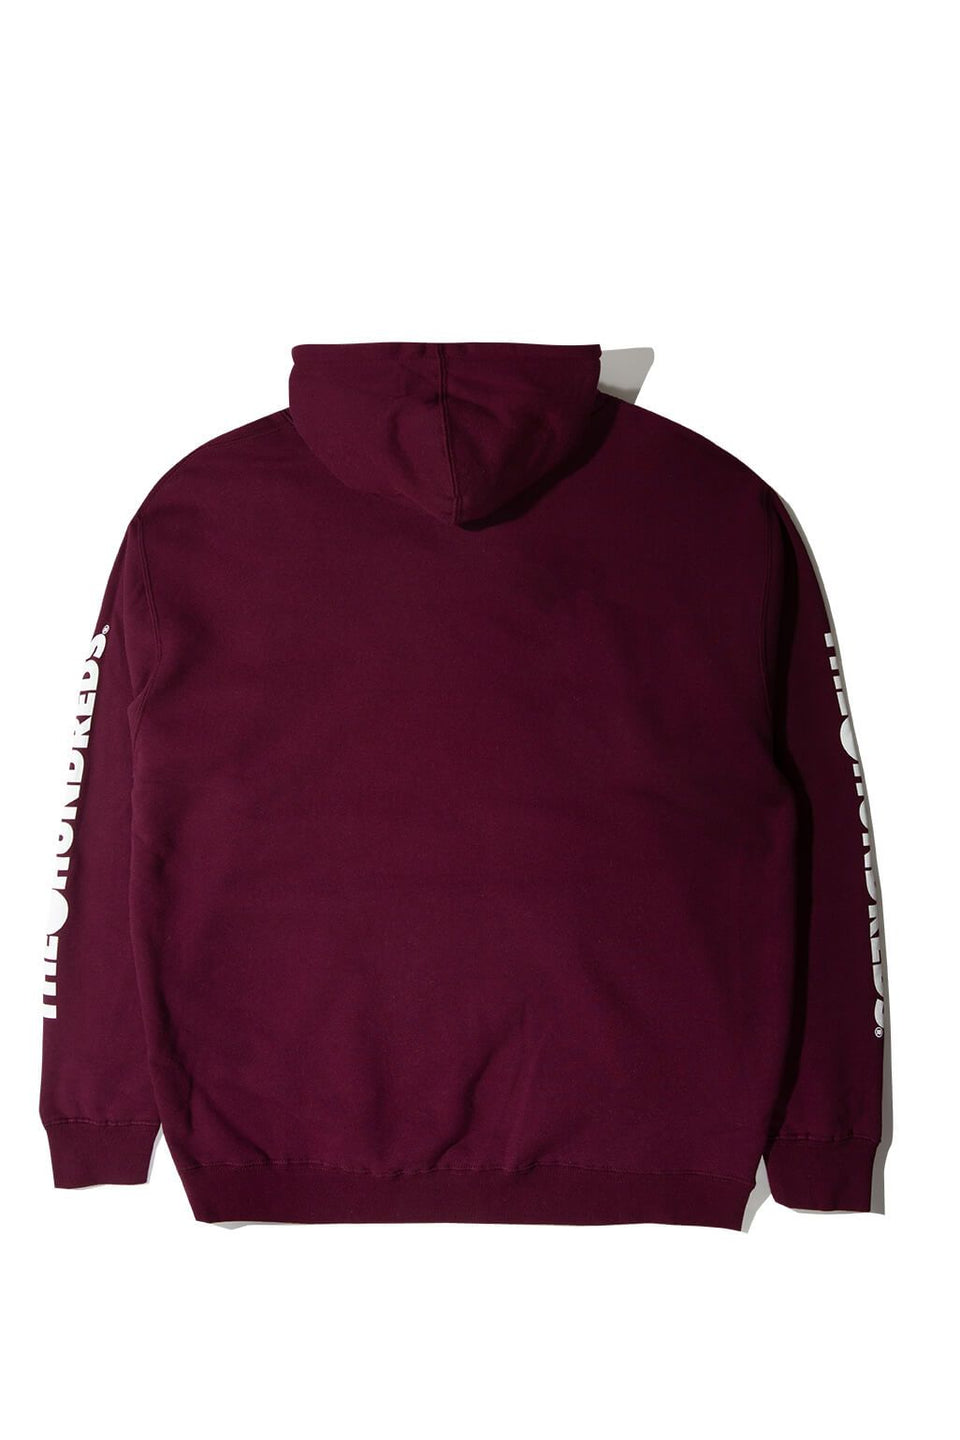 Forever Solid Bomb Crest Pullover Hoodie Burgundy Back